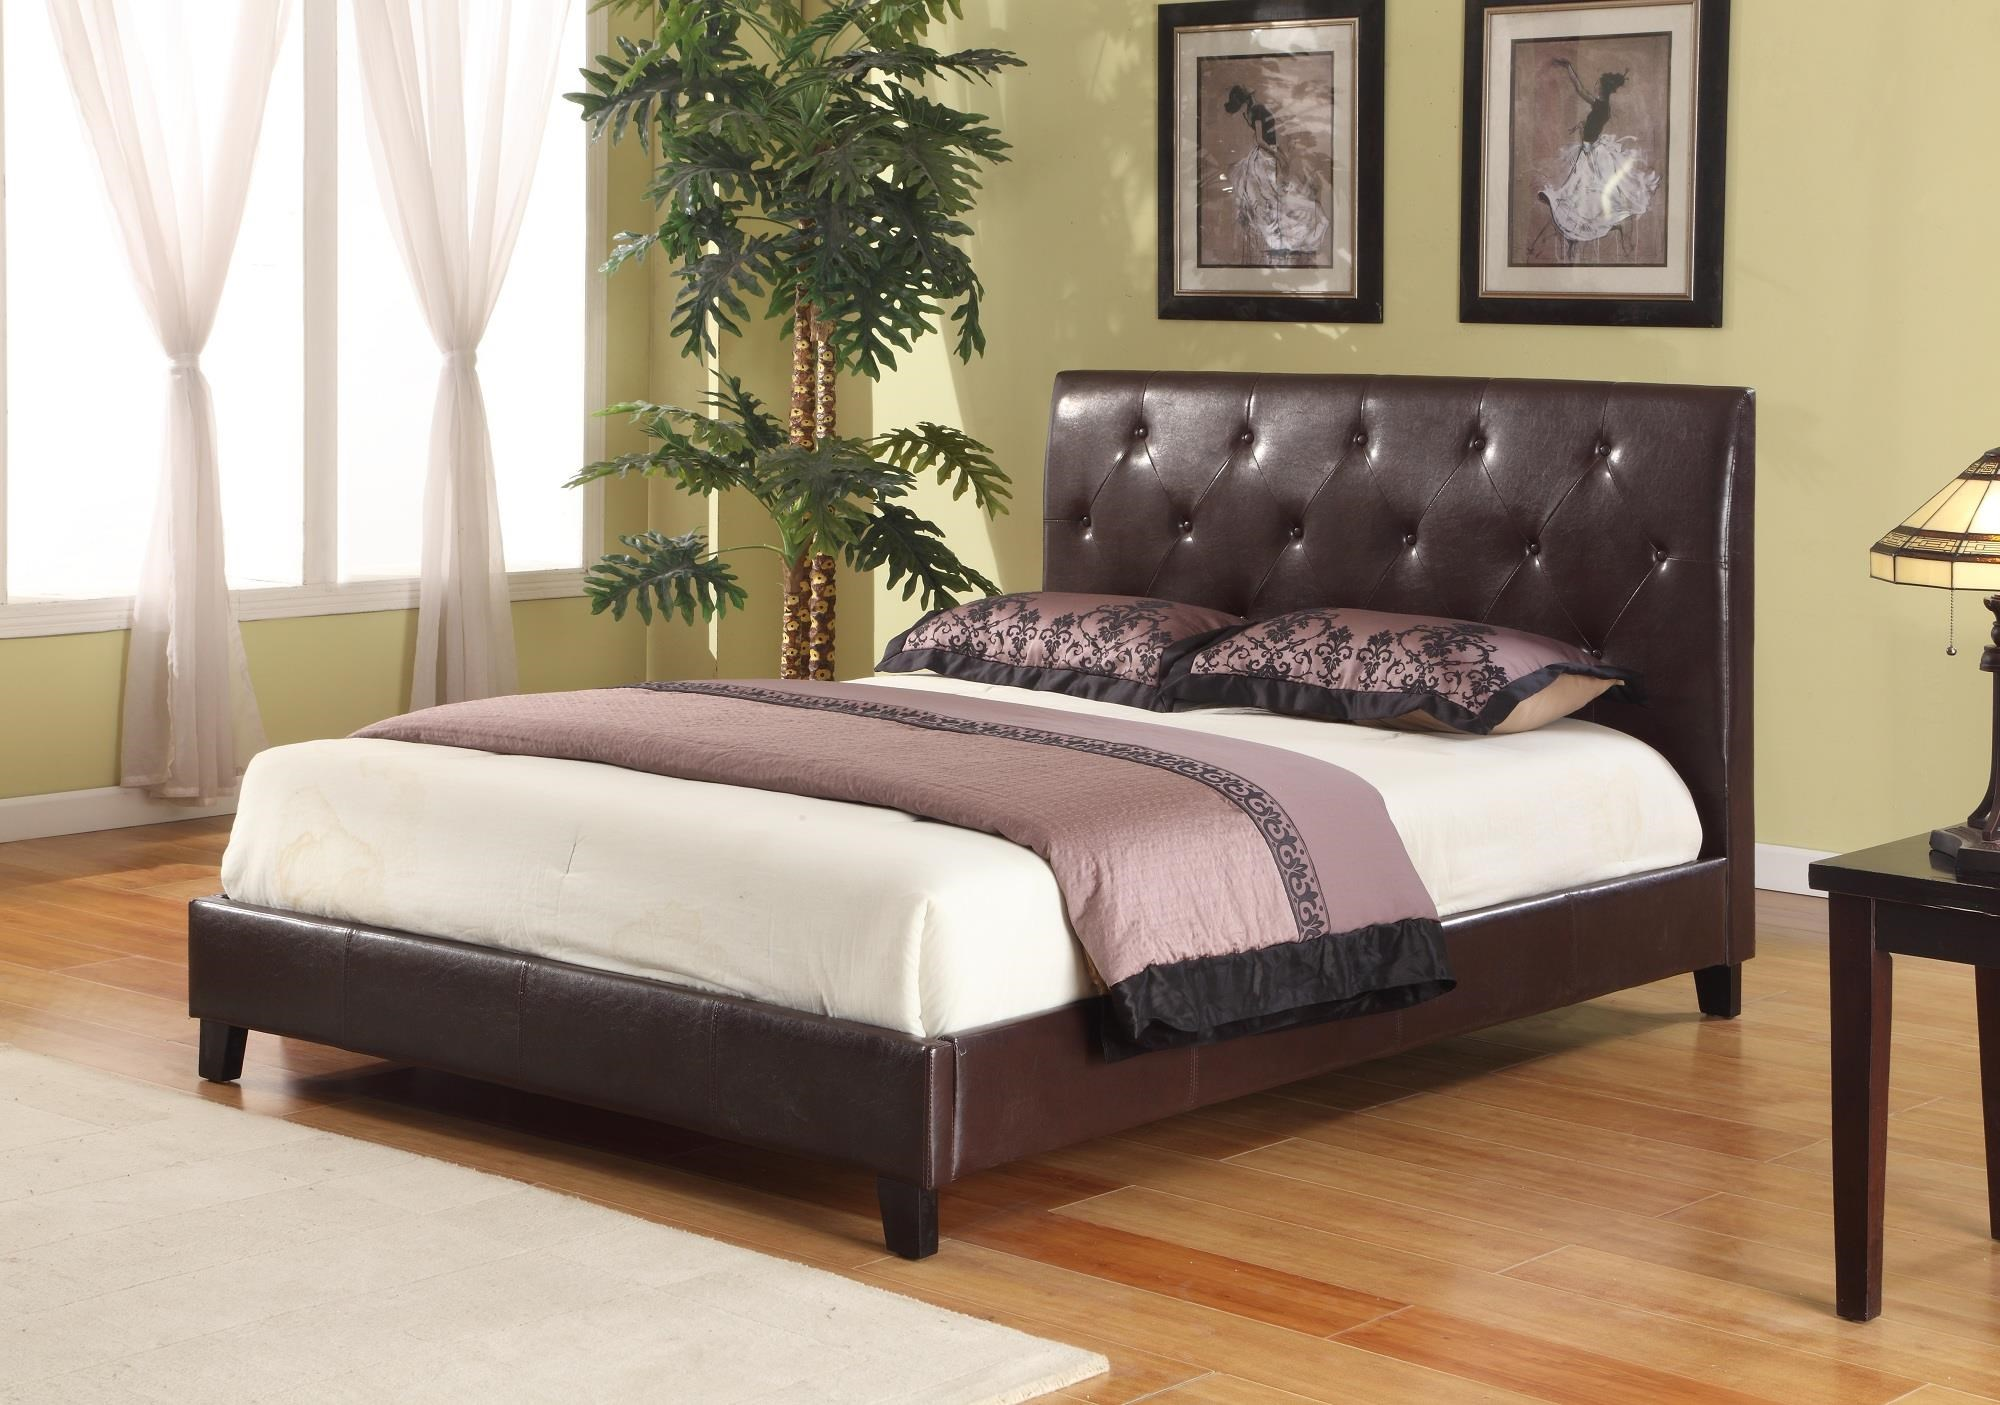 Full Upholstered Faux Leather Tufted Bed